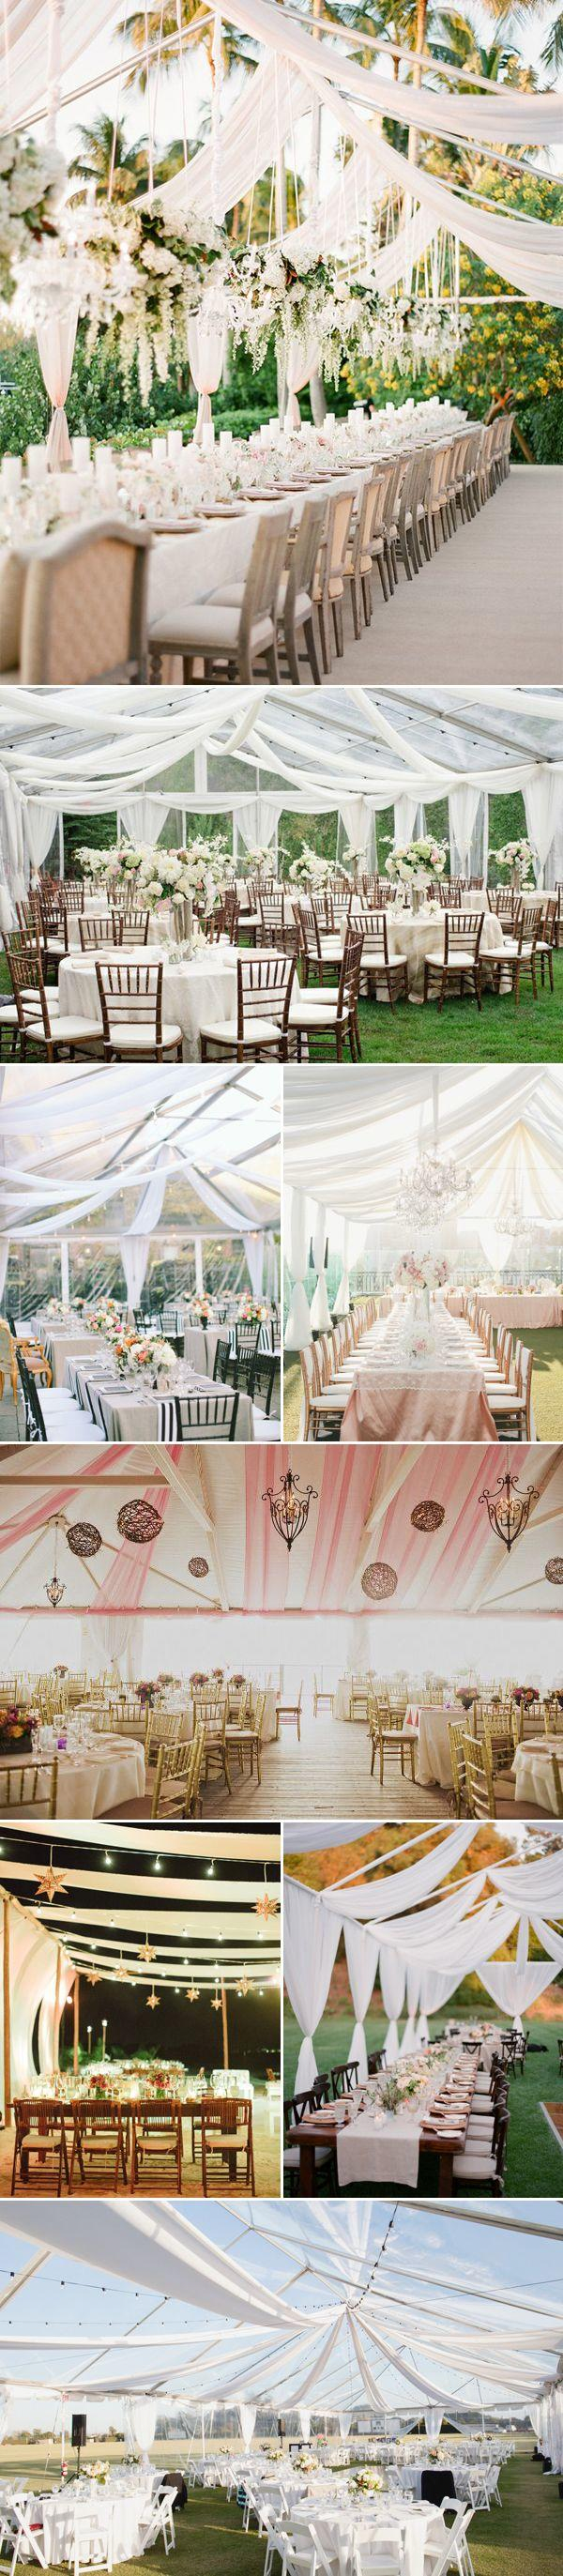 beautiful wedding reception ideas with tents for outdoor wedding ideas